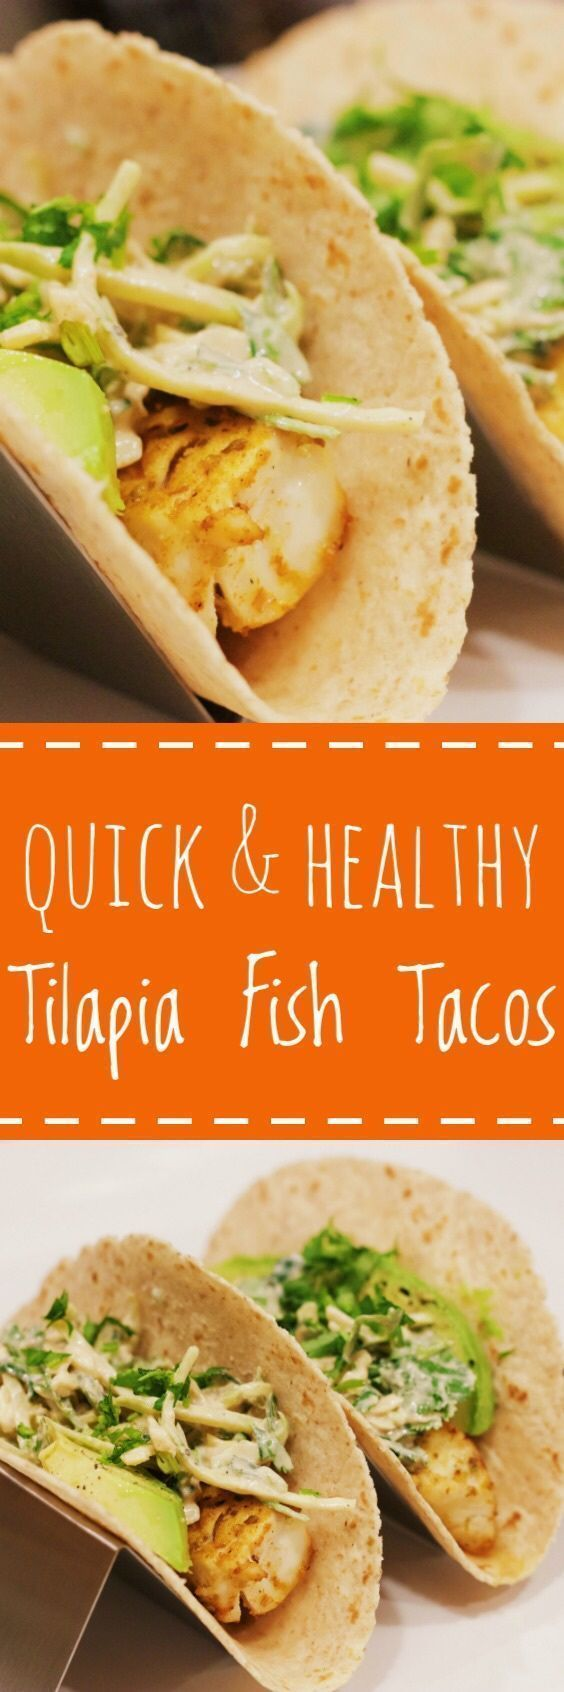 quick and healthy tilapia fish tacos — cardio coffee and